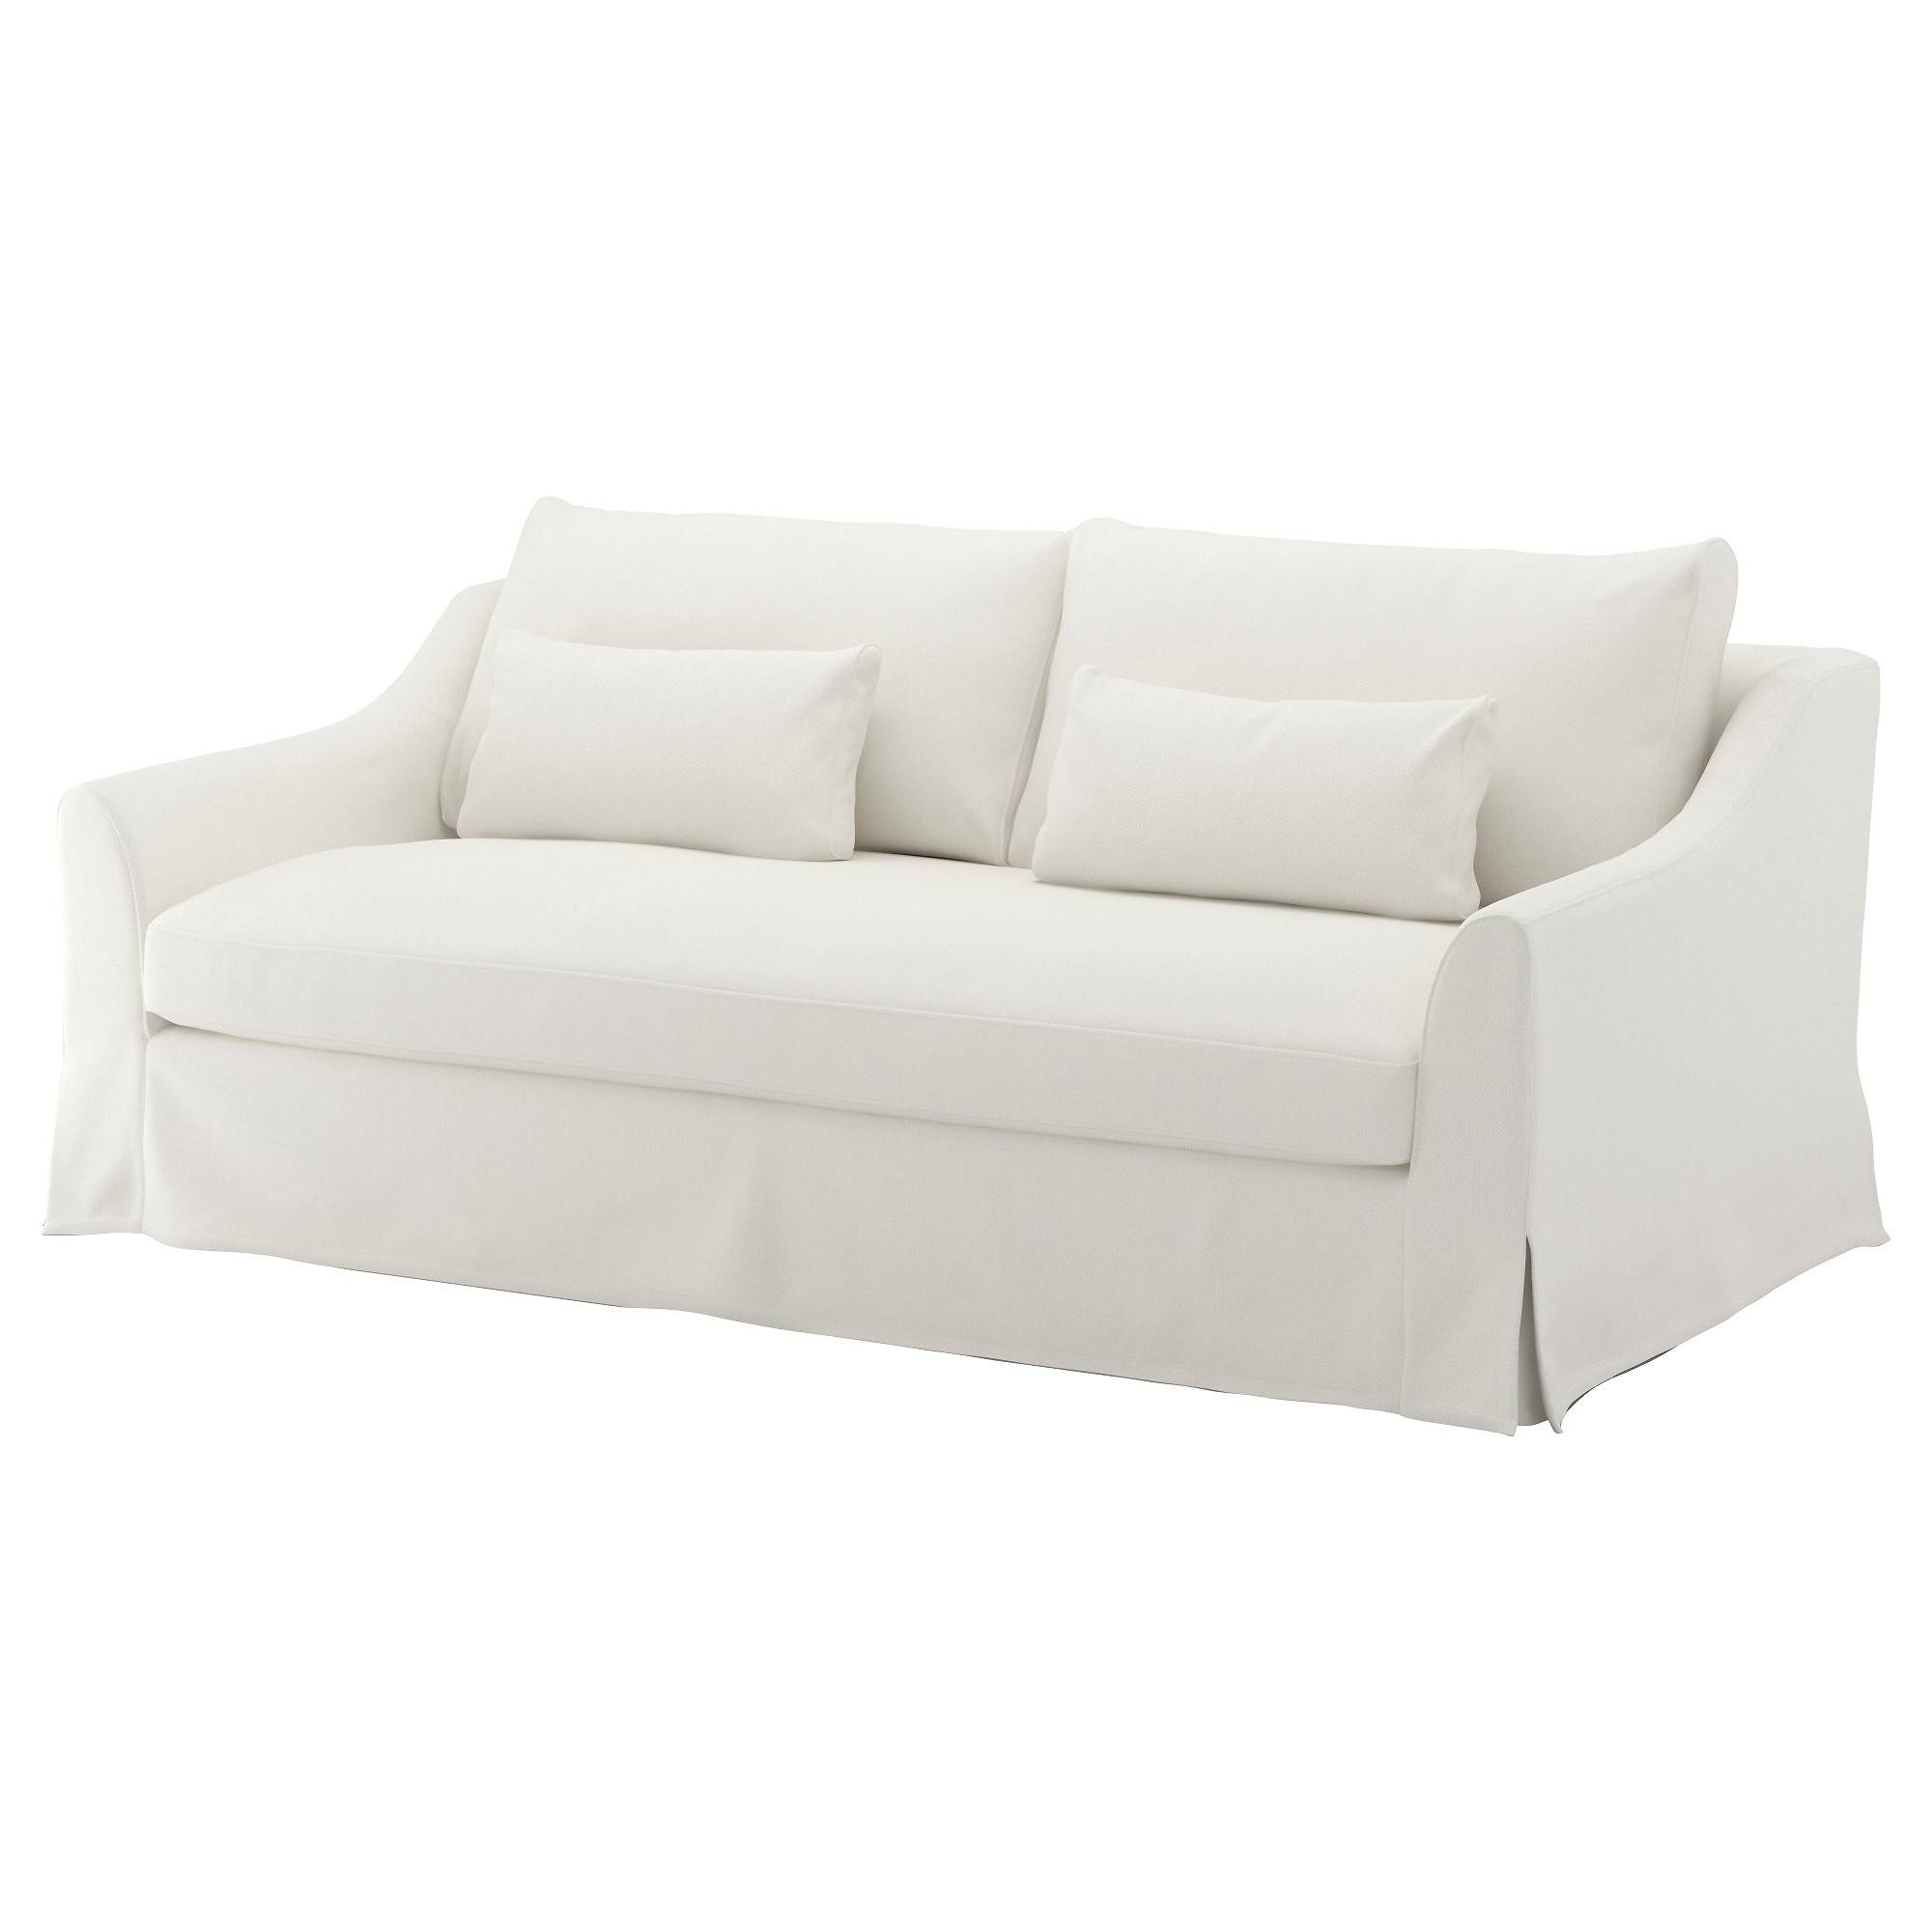 Färlöv Sofa - Flodafors White - Ikea with regard to Black and White Sofas (Image 14 of 30)